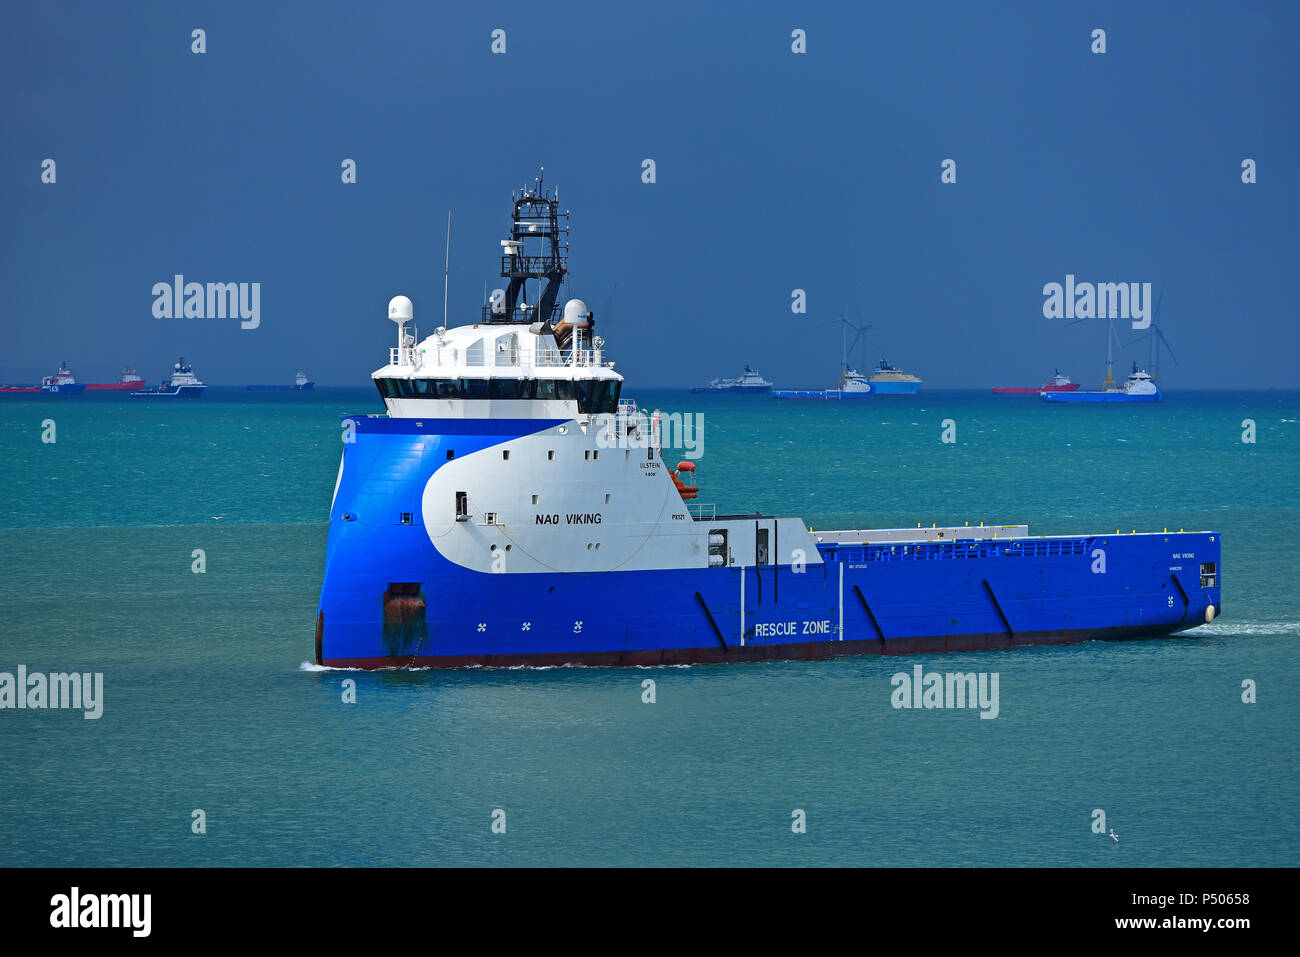 The offshore Supply Ship approaching Aberdeen from the oil fields of the North sea - Stock Image